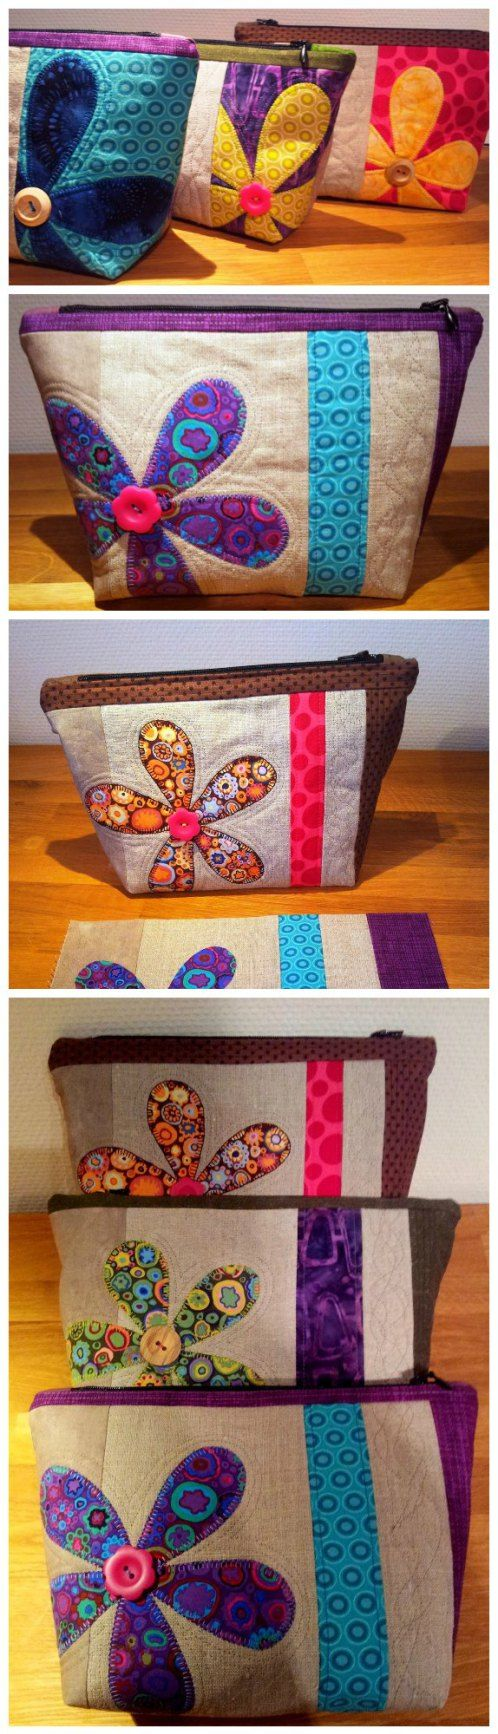 Free sewing pattern. With applique, quilting, flowers, bright fabrics, pieced panels, etc, these cute cosmetics bags are a great way to teach sewing or practice your skills too. Can't stop making them!